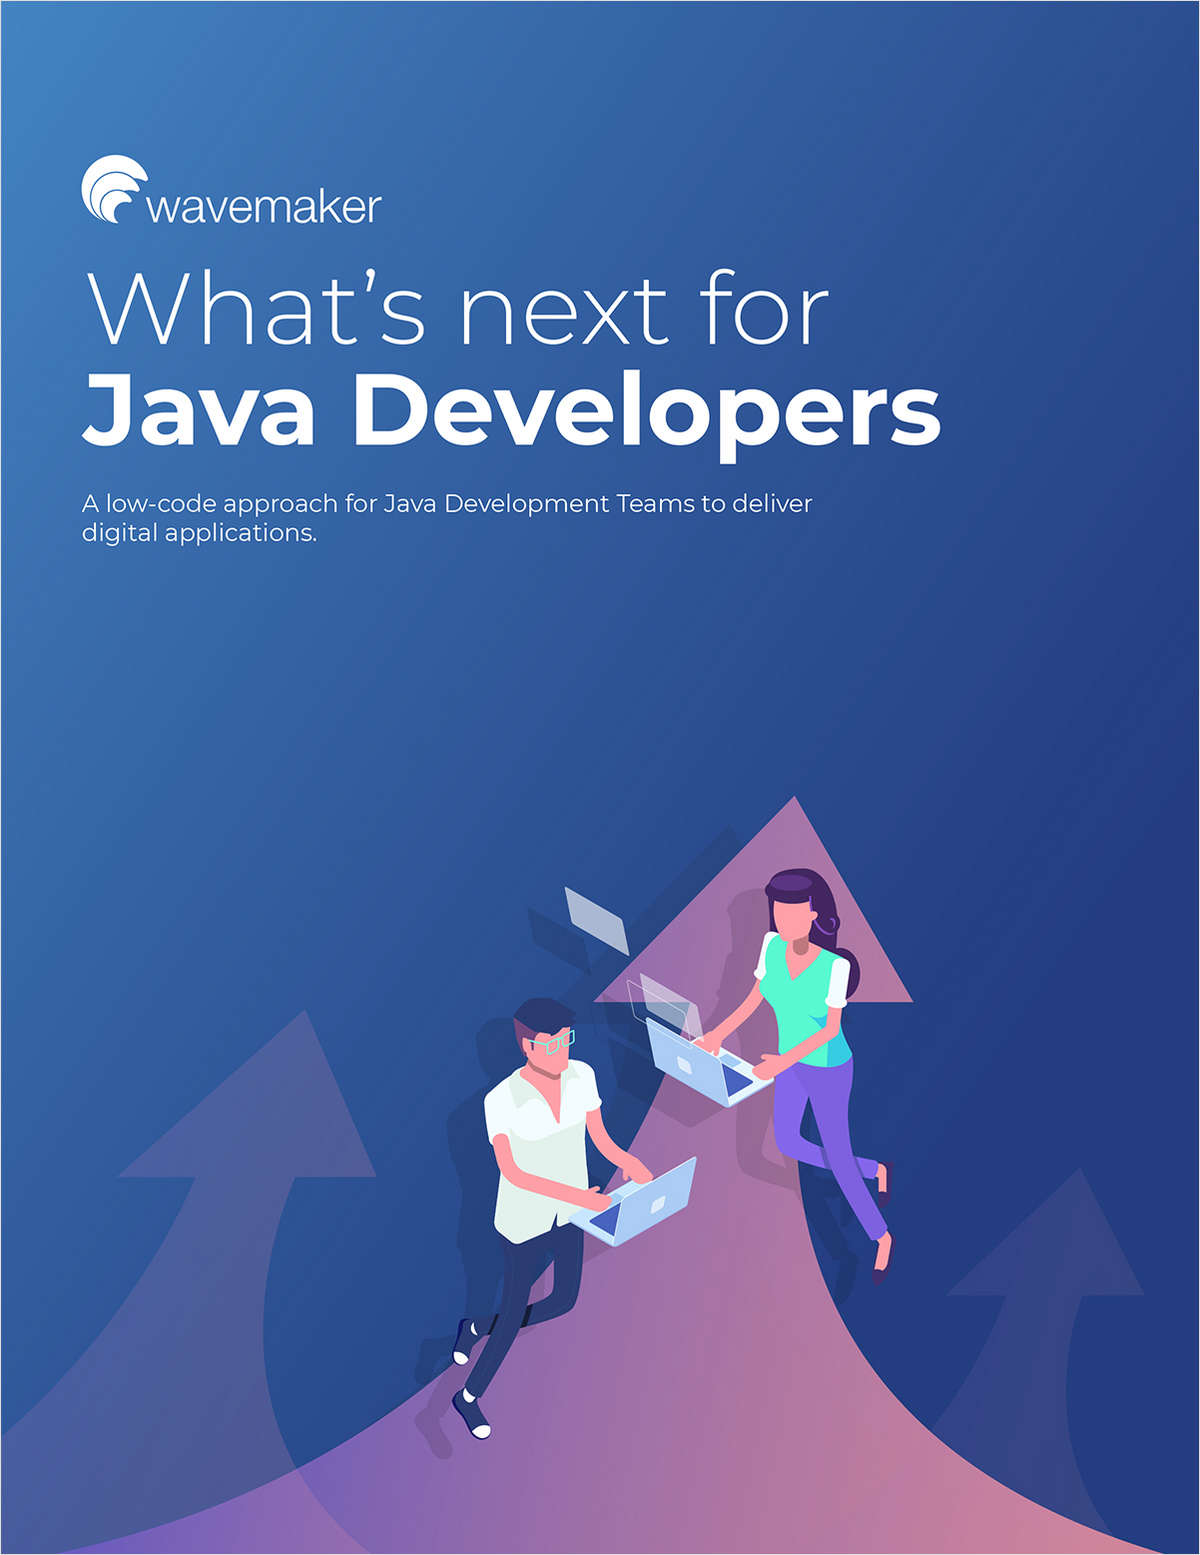 Empowering Java Development Teams to Deliver Digital Applications Using Low-Code